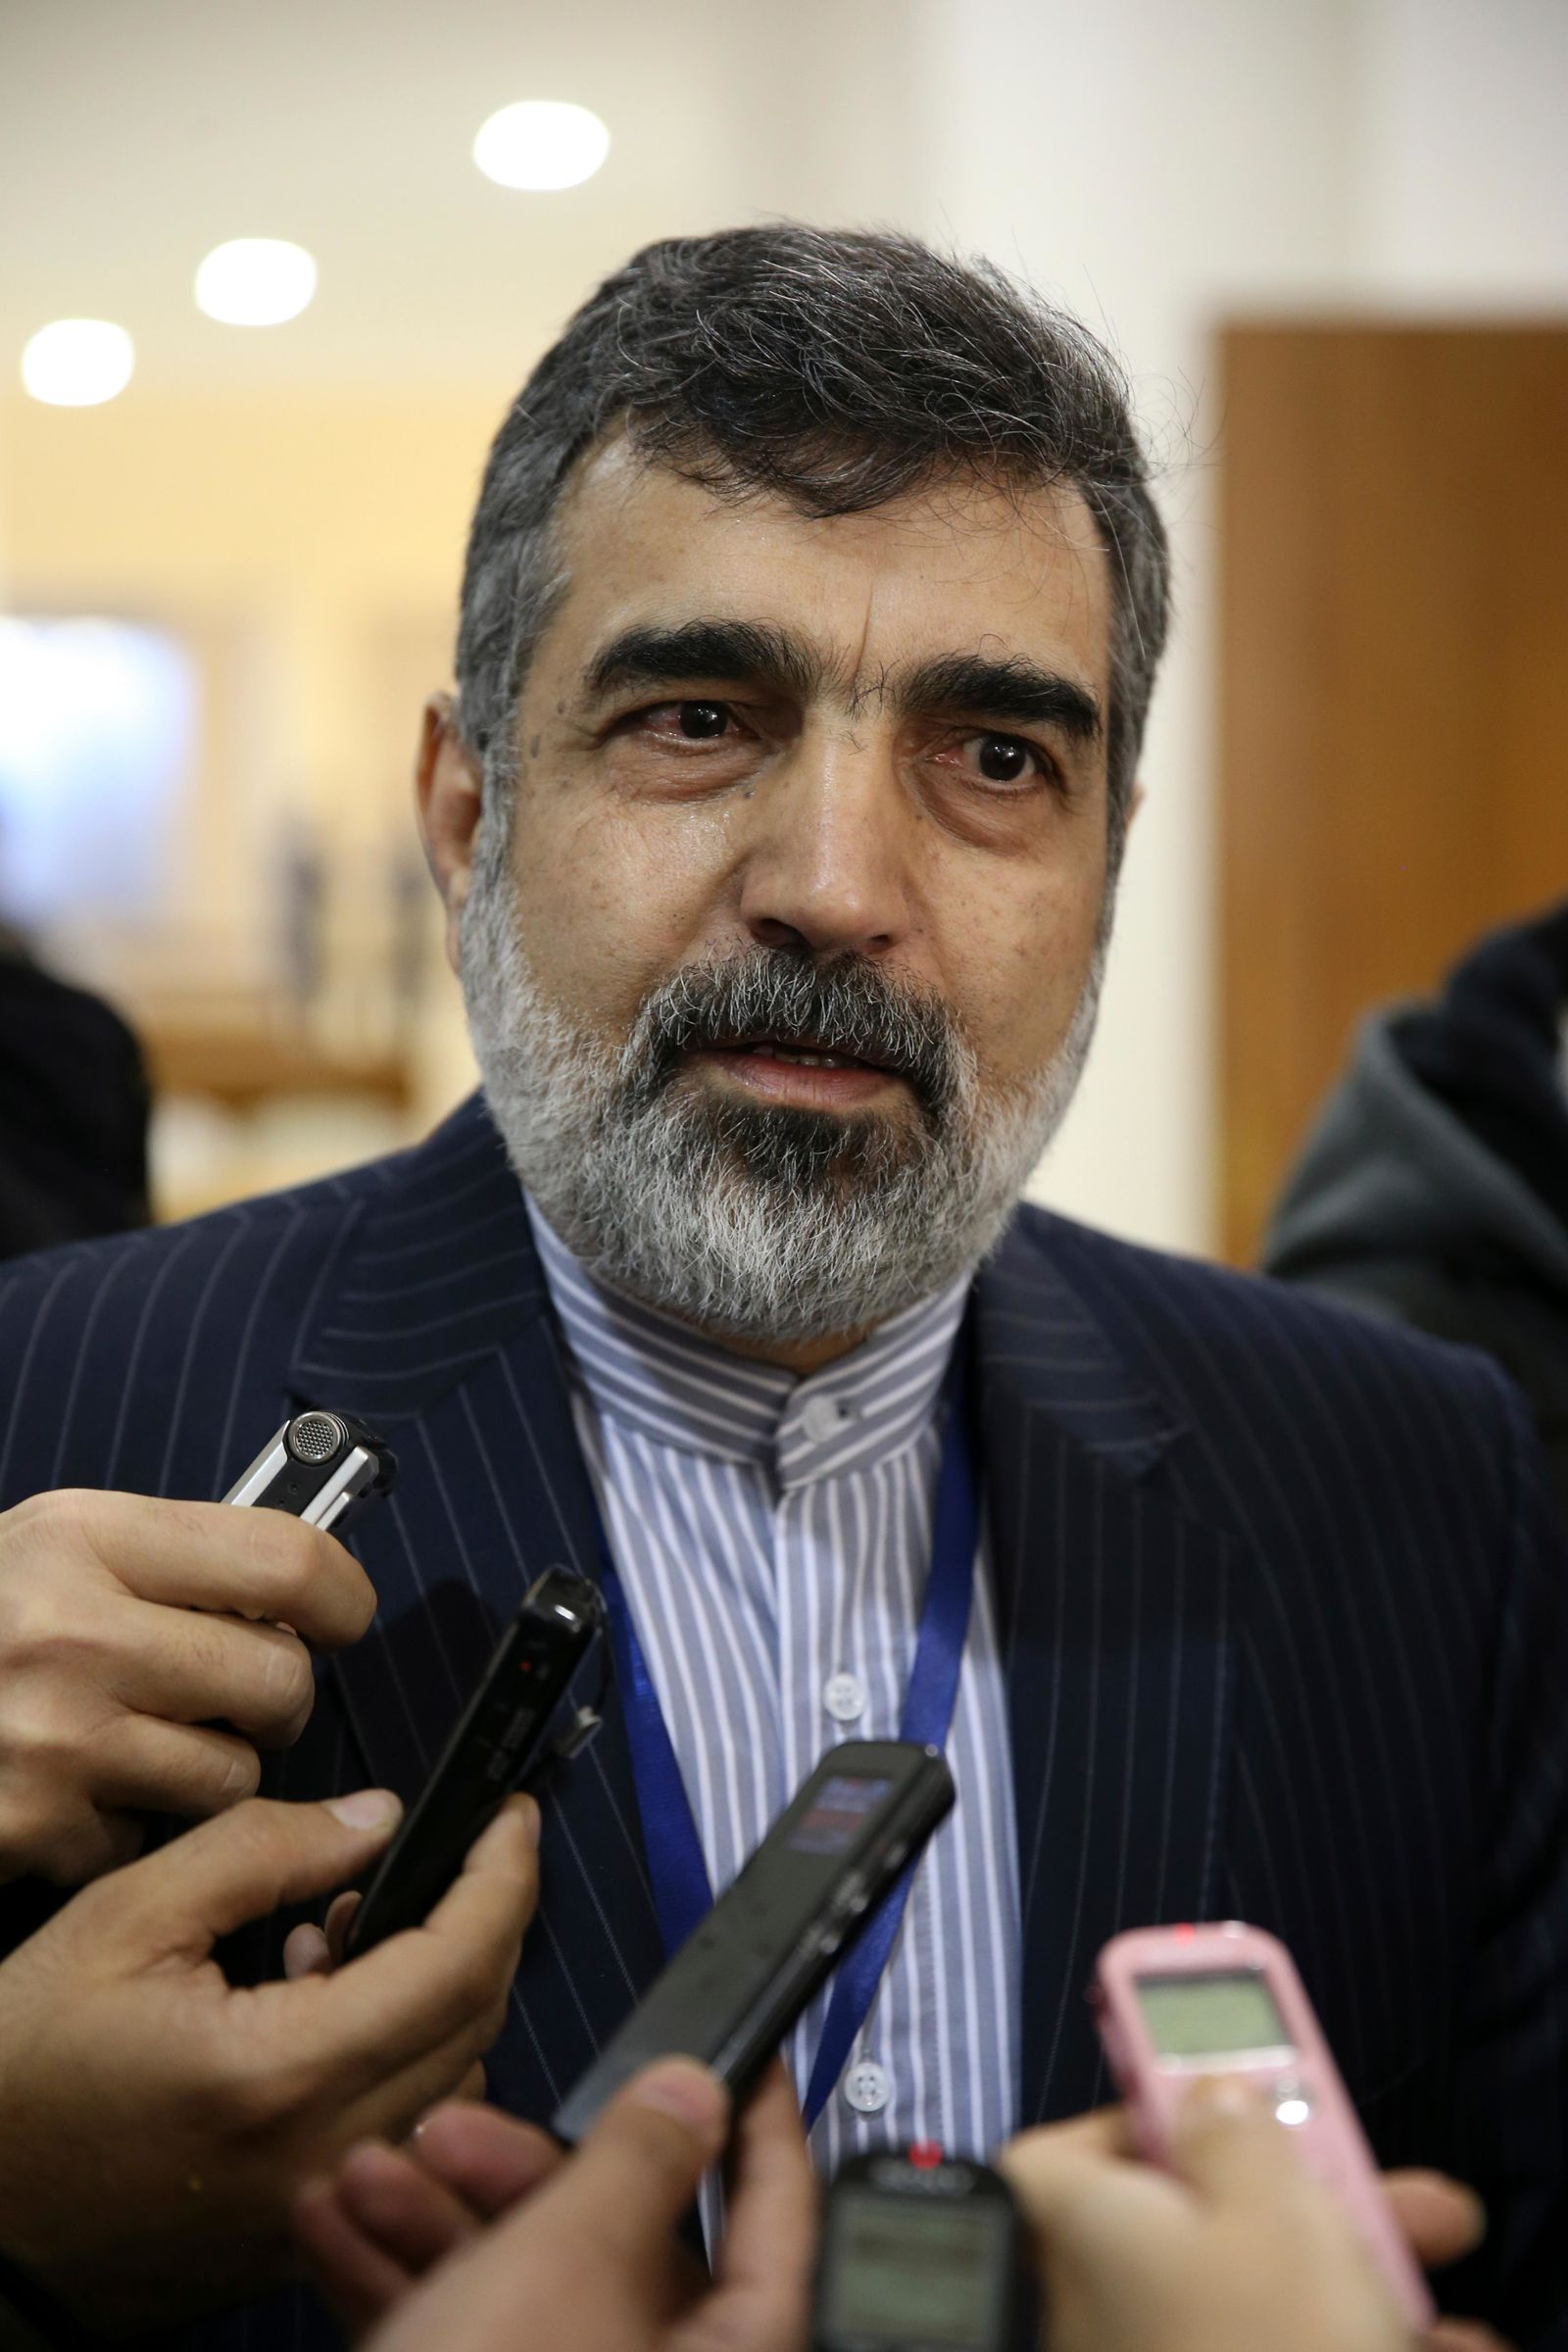 In this photo taken Dec. 9, 2014, spokesman for Iran's atomic agency Behrouz Kamalvandi speaks to the media, in Tehran, Iran. Iran will break the uranium stockpile limit set by Tehran's nuclear deal with world powers in the next 10 days, spokesman for the country's atomic agency Kamalvandi said Monday June 17, 2019, while also warning that Iran has the need for uranium enriched up to 20%, just a step away from weapons-grade levels. (AP Photo/Vahid Salemi)